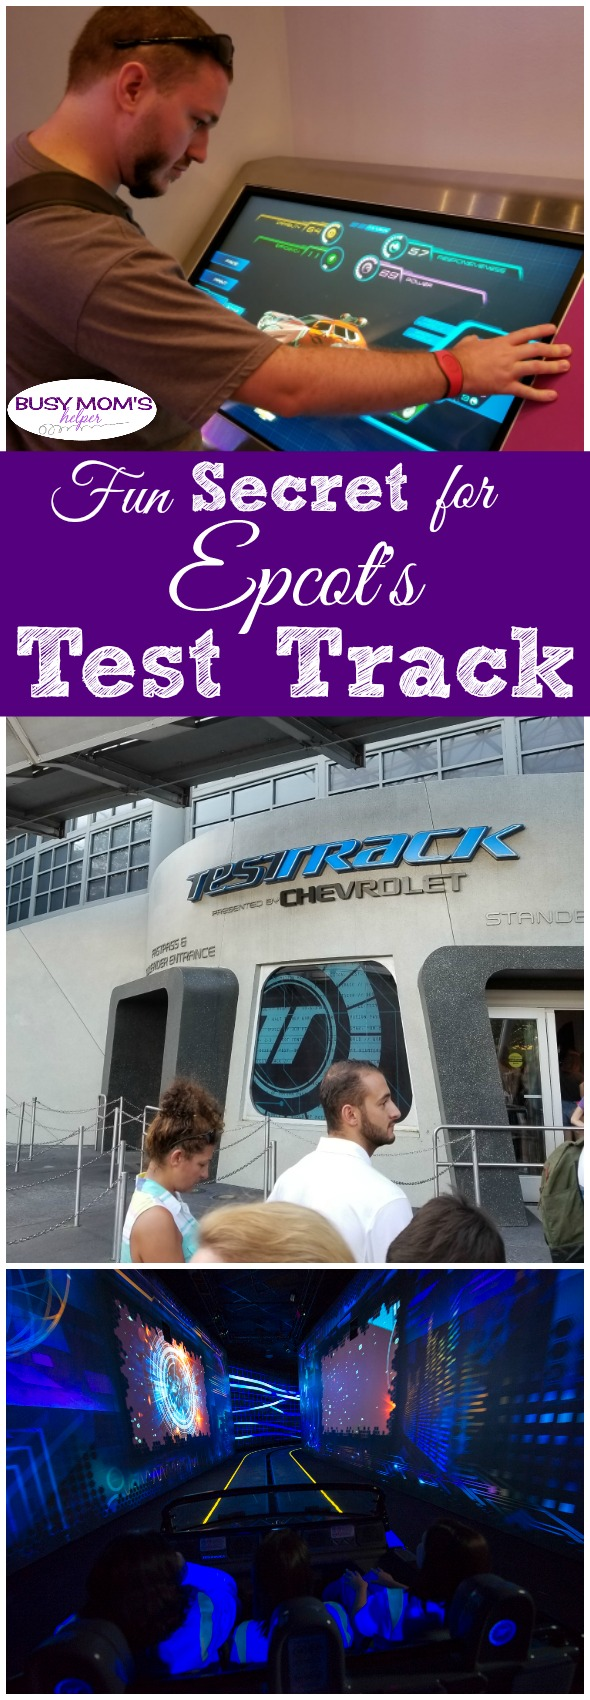 A Fun Secret for Epcot's Test Track Ride #waltdisneyworld #testtrack #epcot #disneyworld #disney #themepark #rides